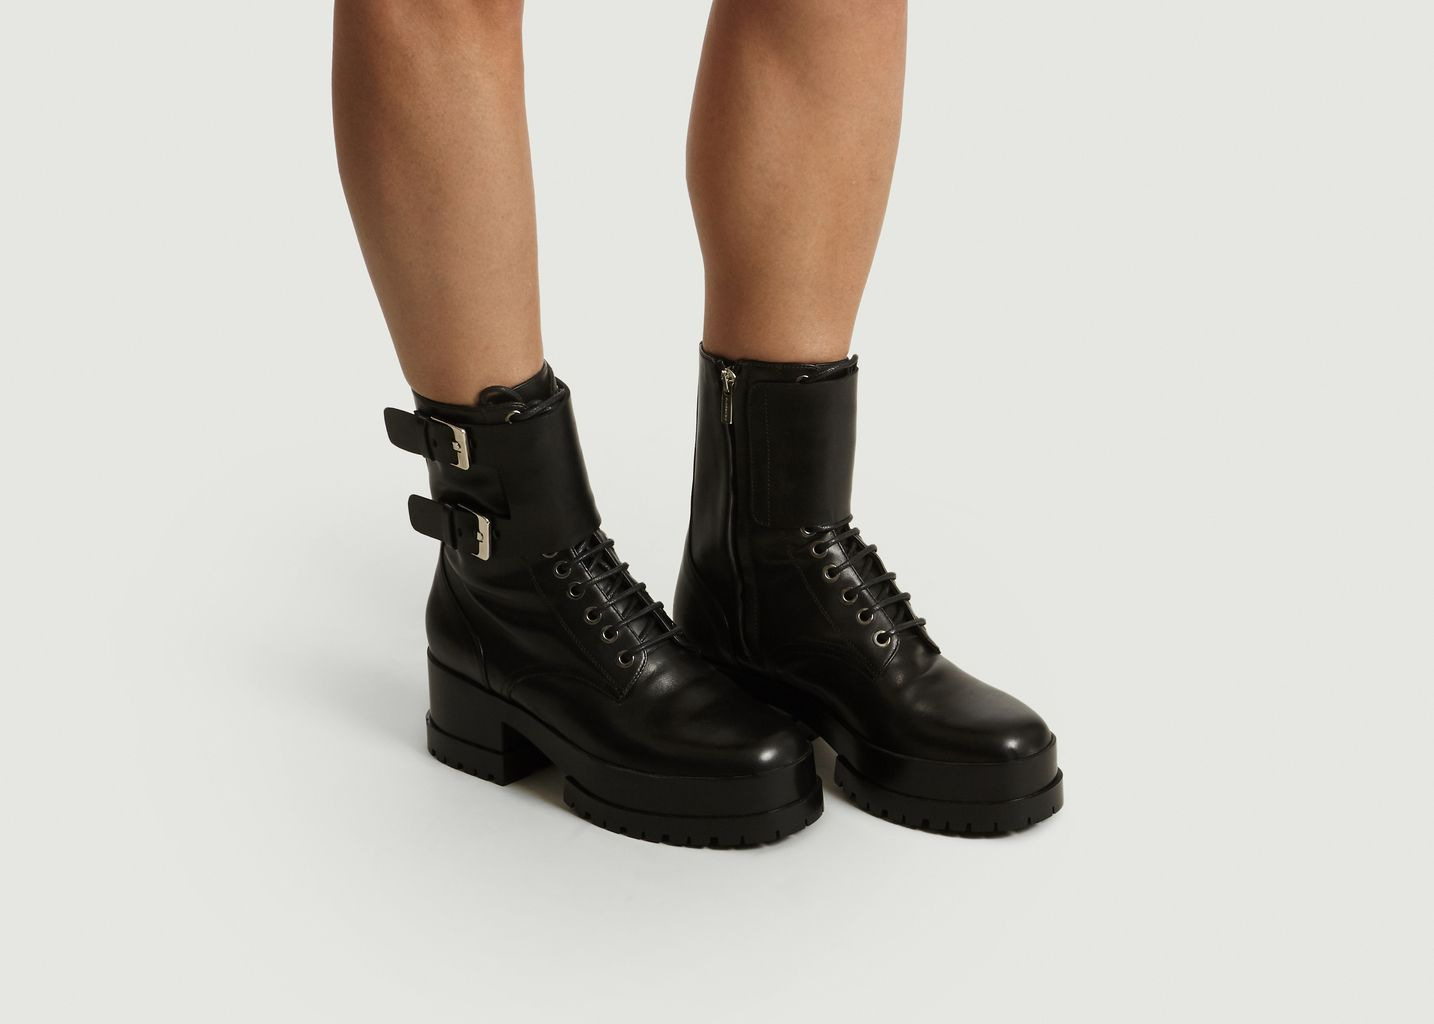 Bottines Boucle Commando Willy 2 - Clergerie